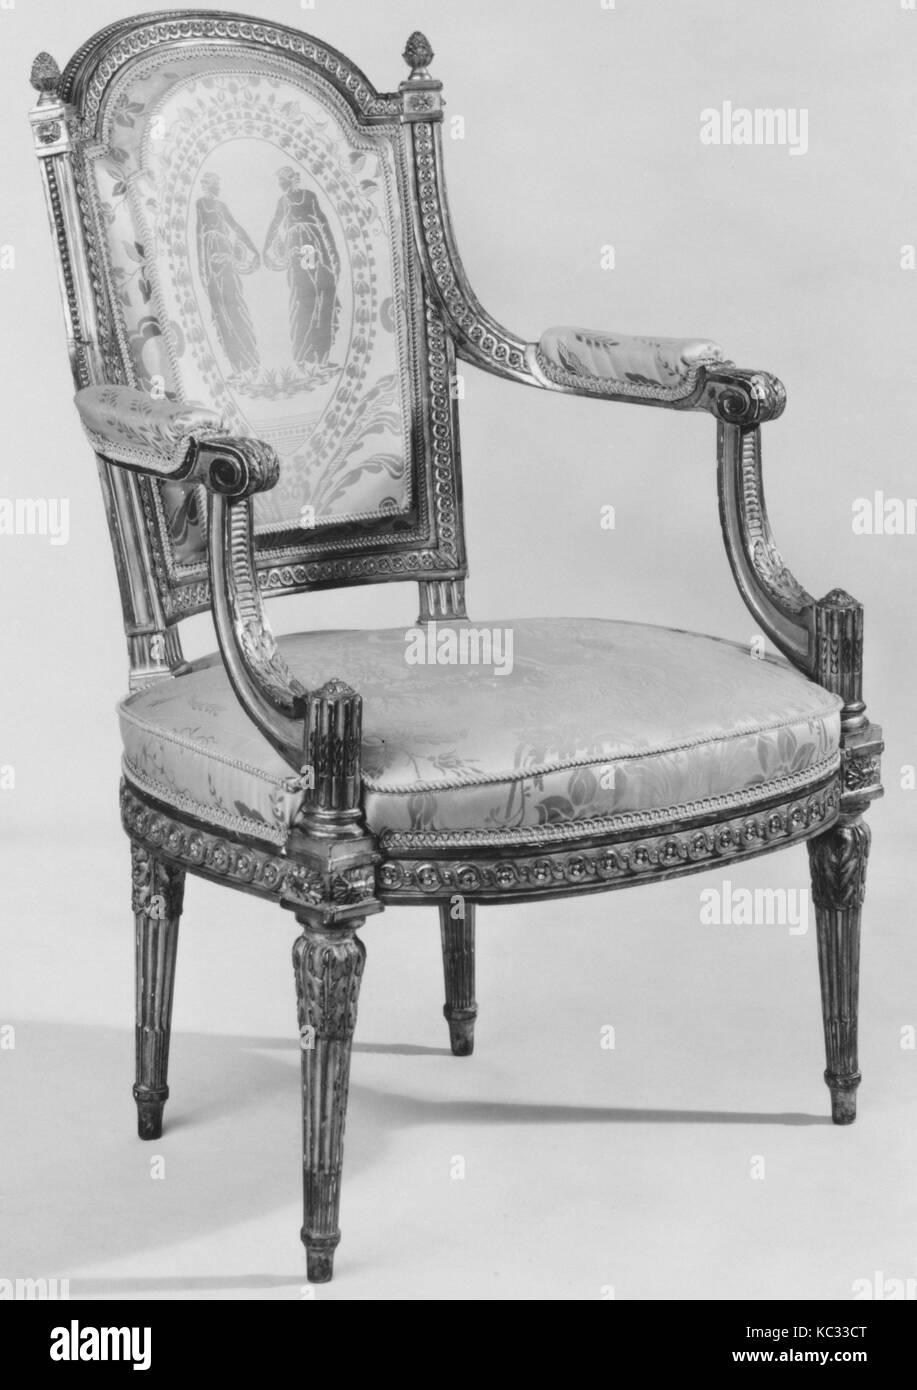 Fauteuil High Resolution Stock Photography And Images Alamy